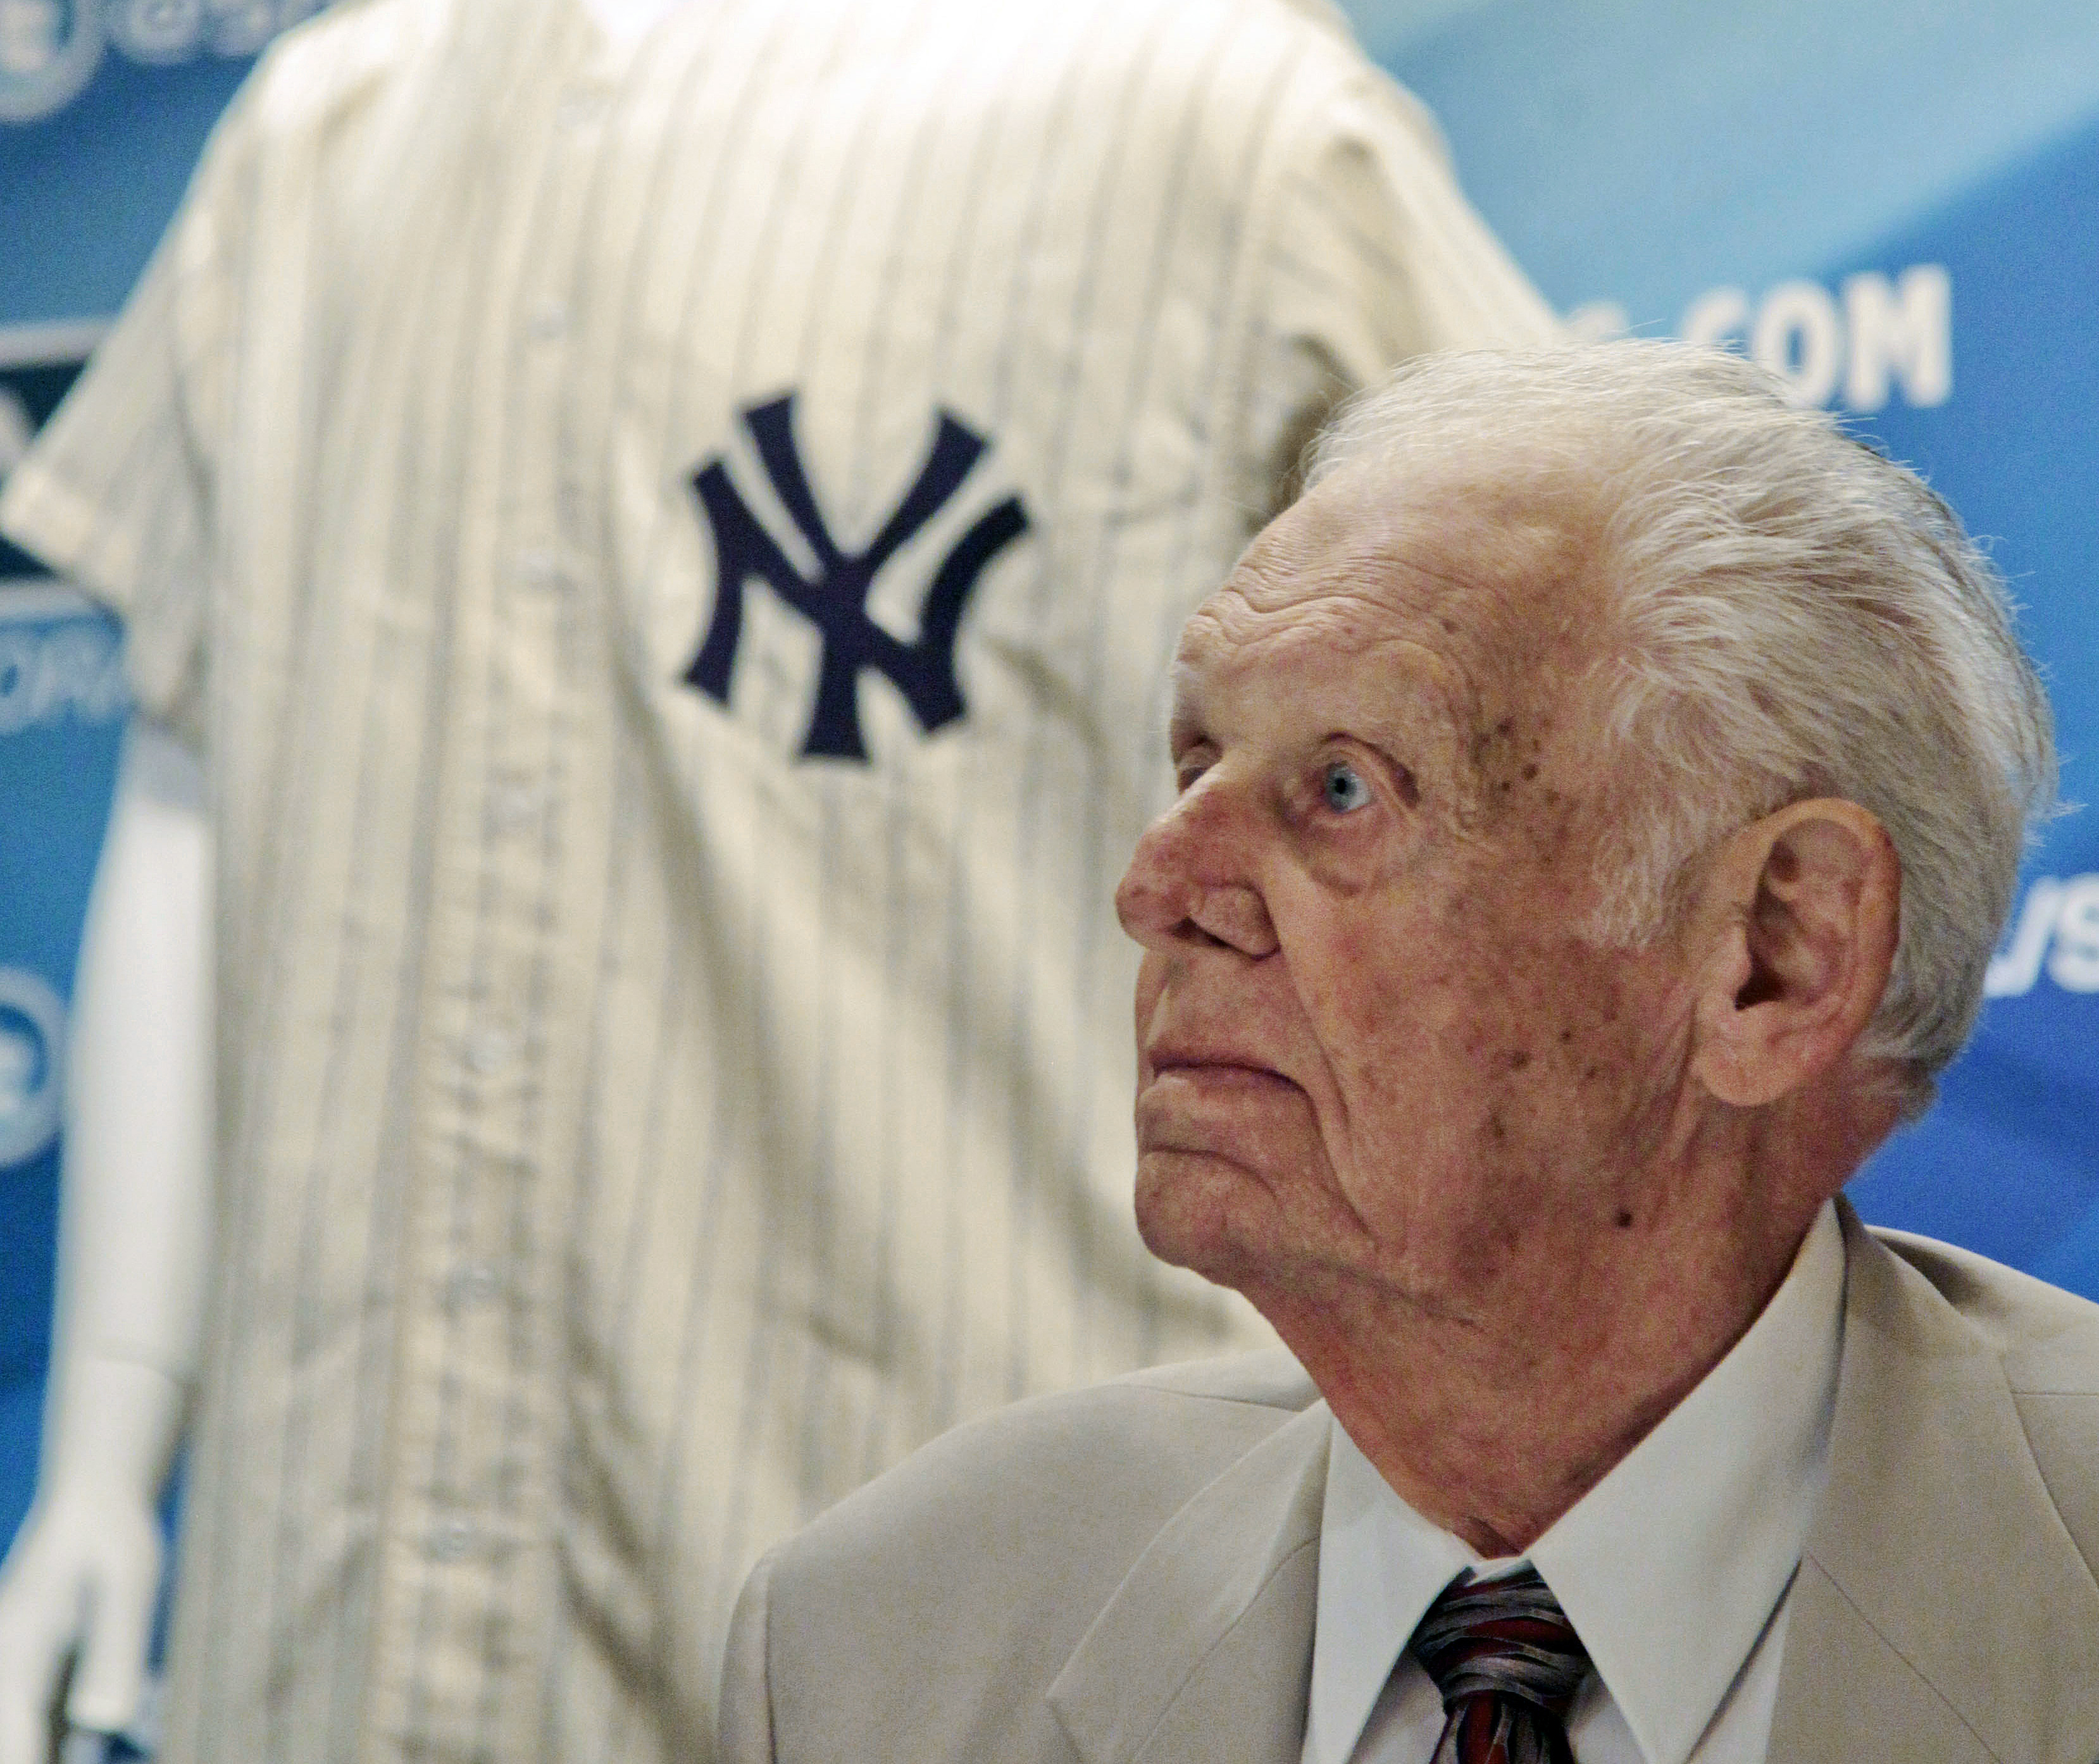 New York Yankees great Don Larsen died Wednesday. He was 90.